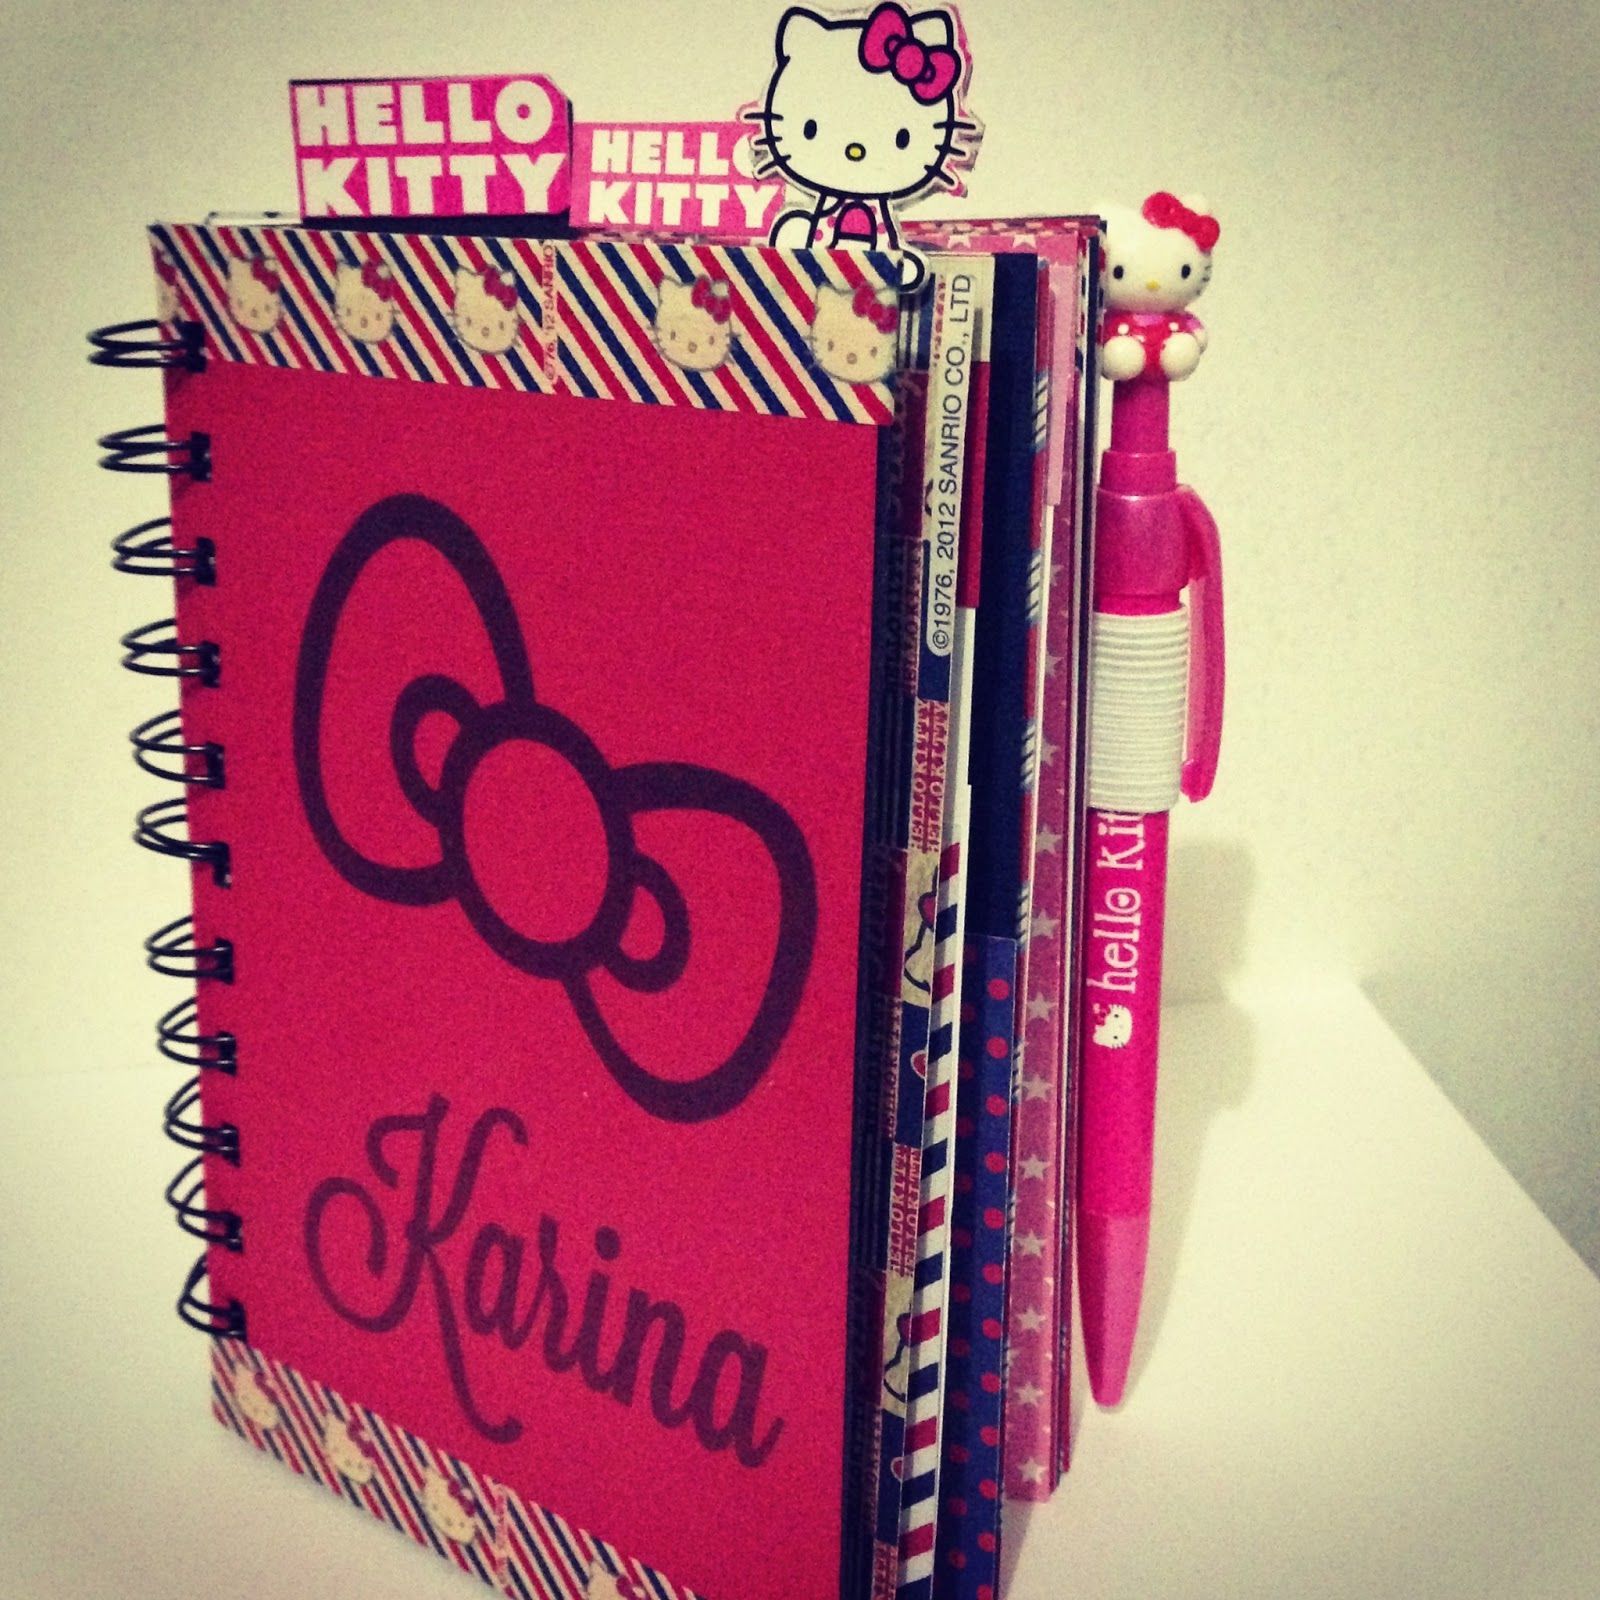 Scrapbook ideas hello kitty - Hello Kitty Scrapbook At Target Used My Bind It All And Scrapbook Paper From The